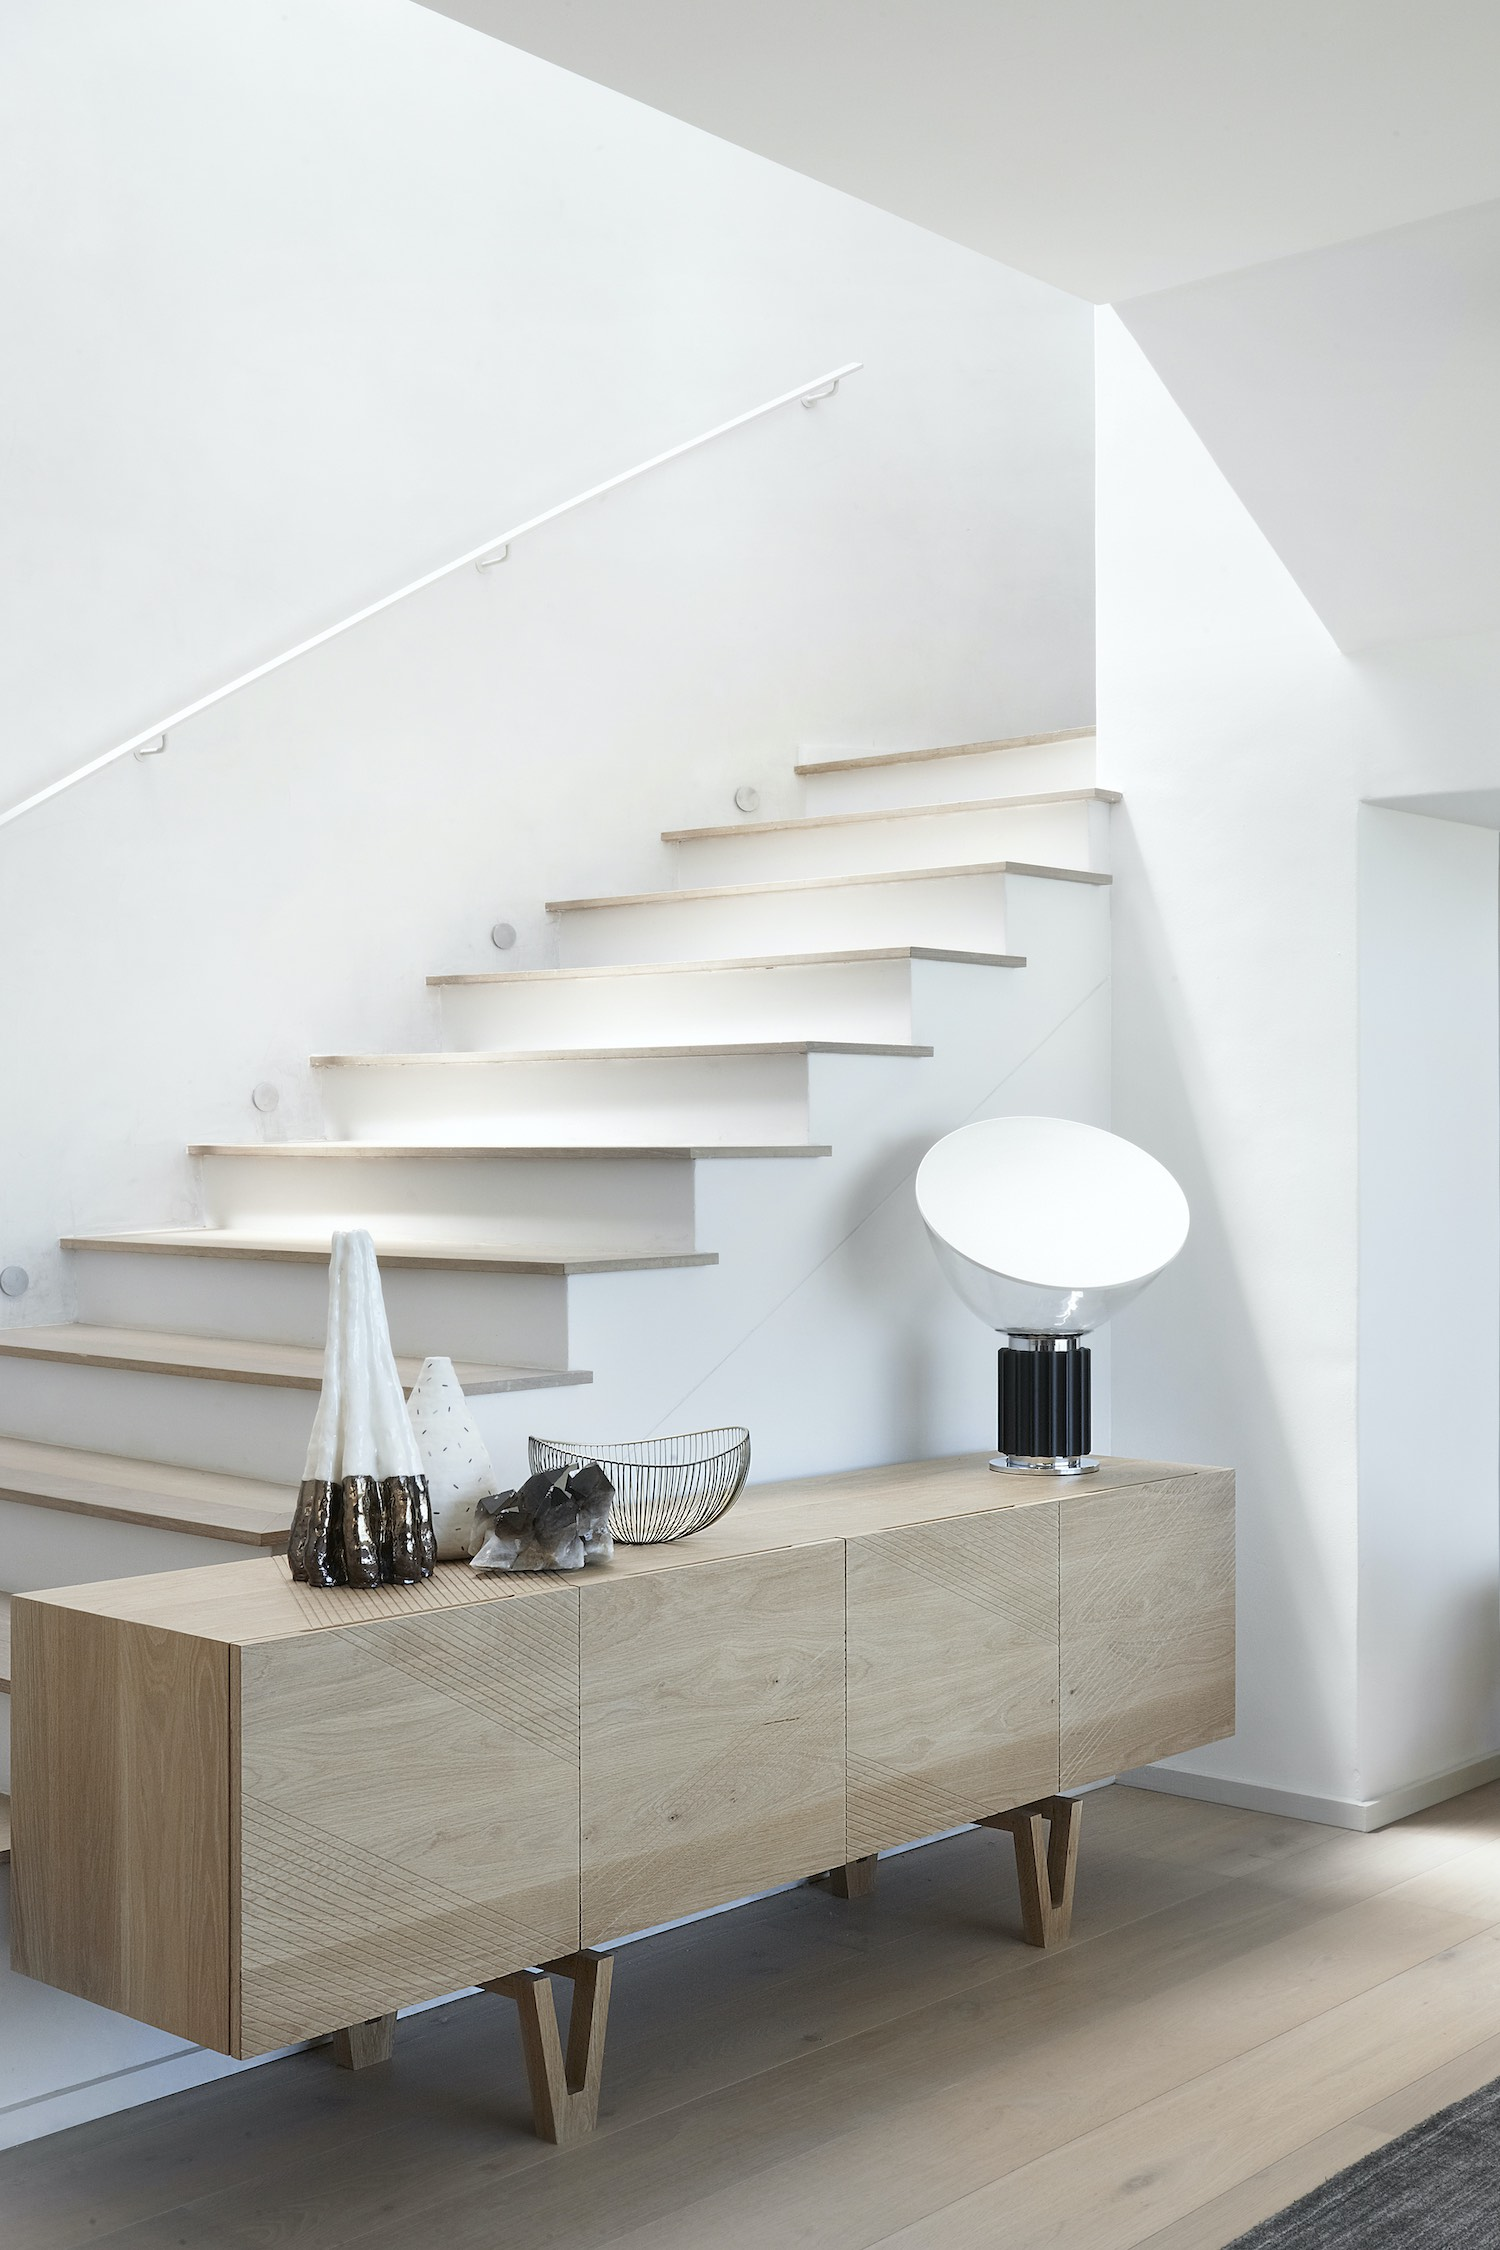 table lamp near the staircase